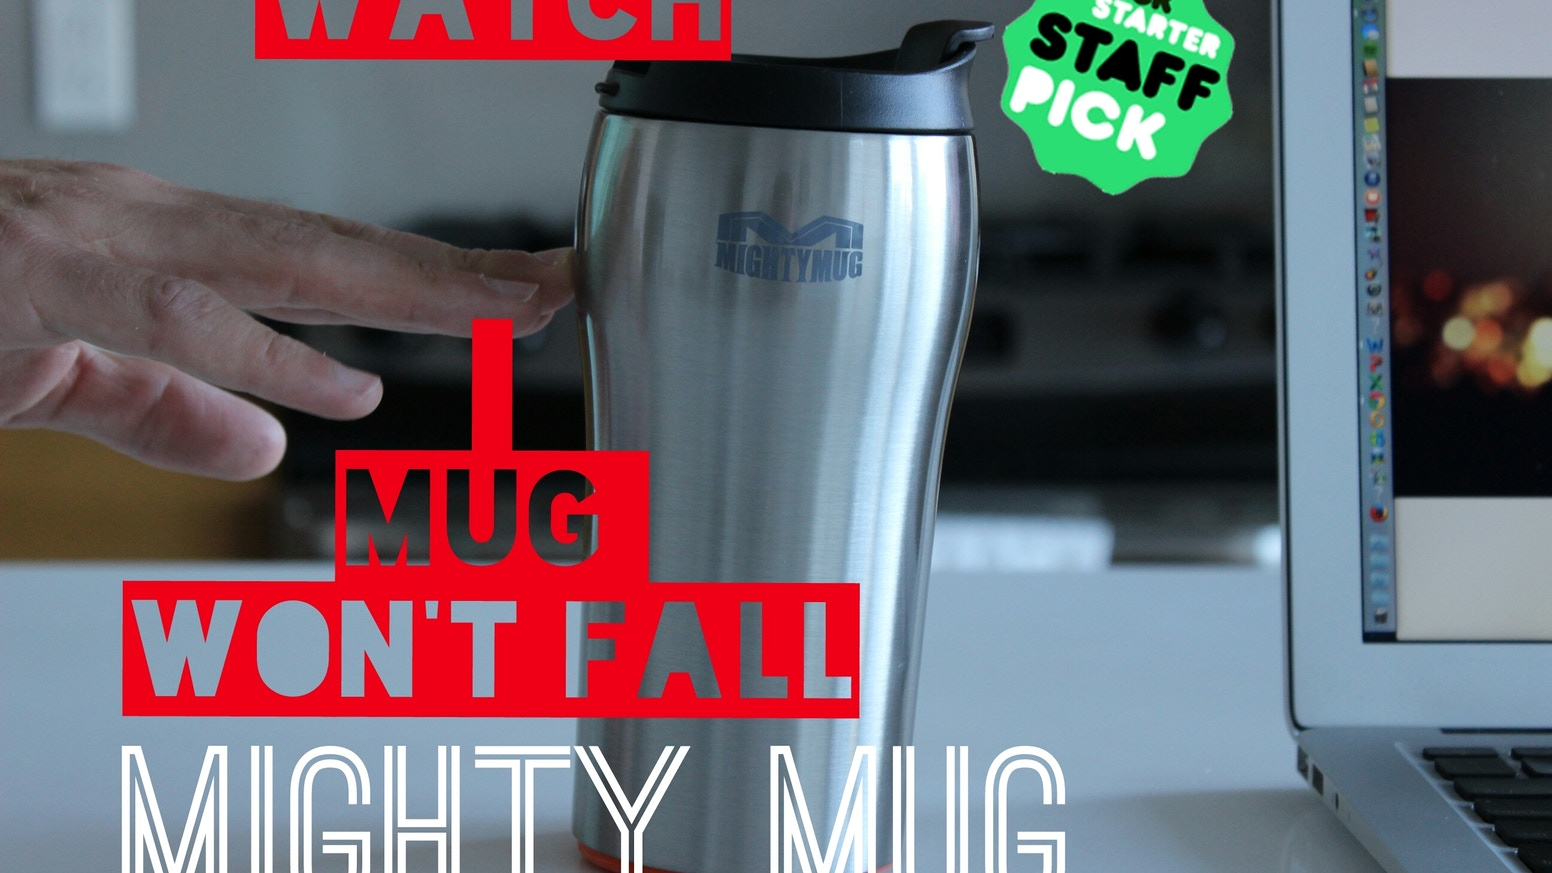 Mighty Mug grips to your desk when knocked into but lifts naturally. Powered by Smartgrip technology Mighty Mug is a new smarter mug.